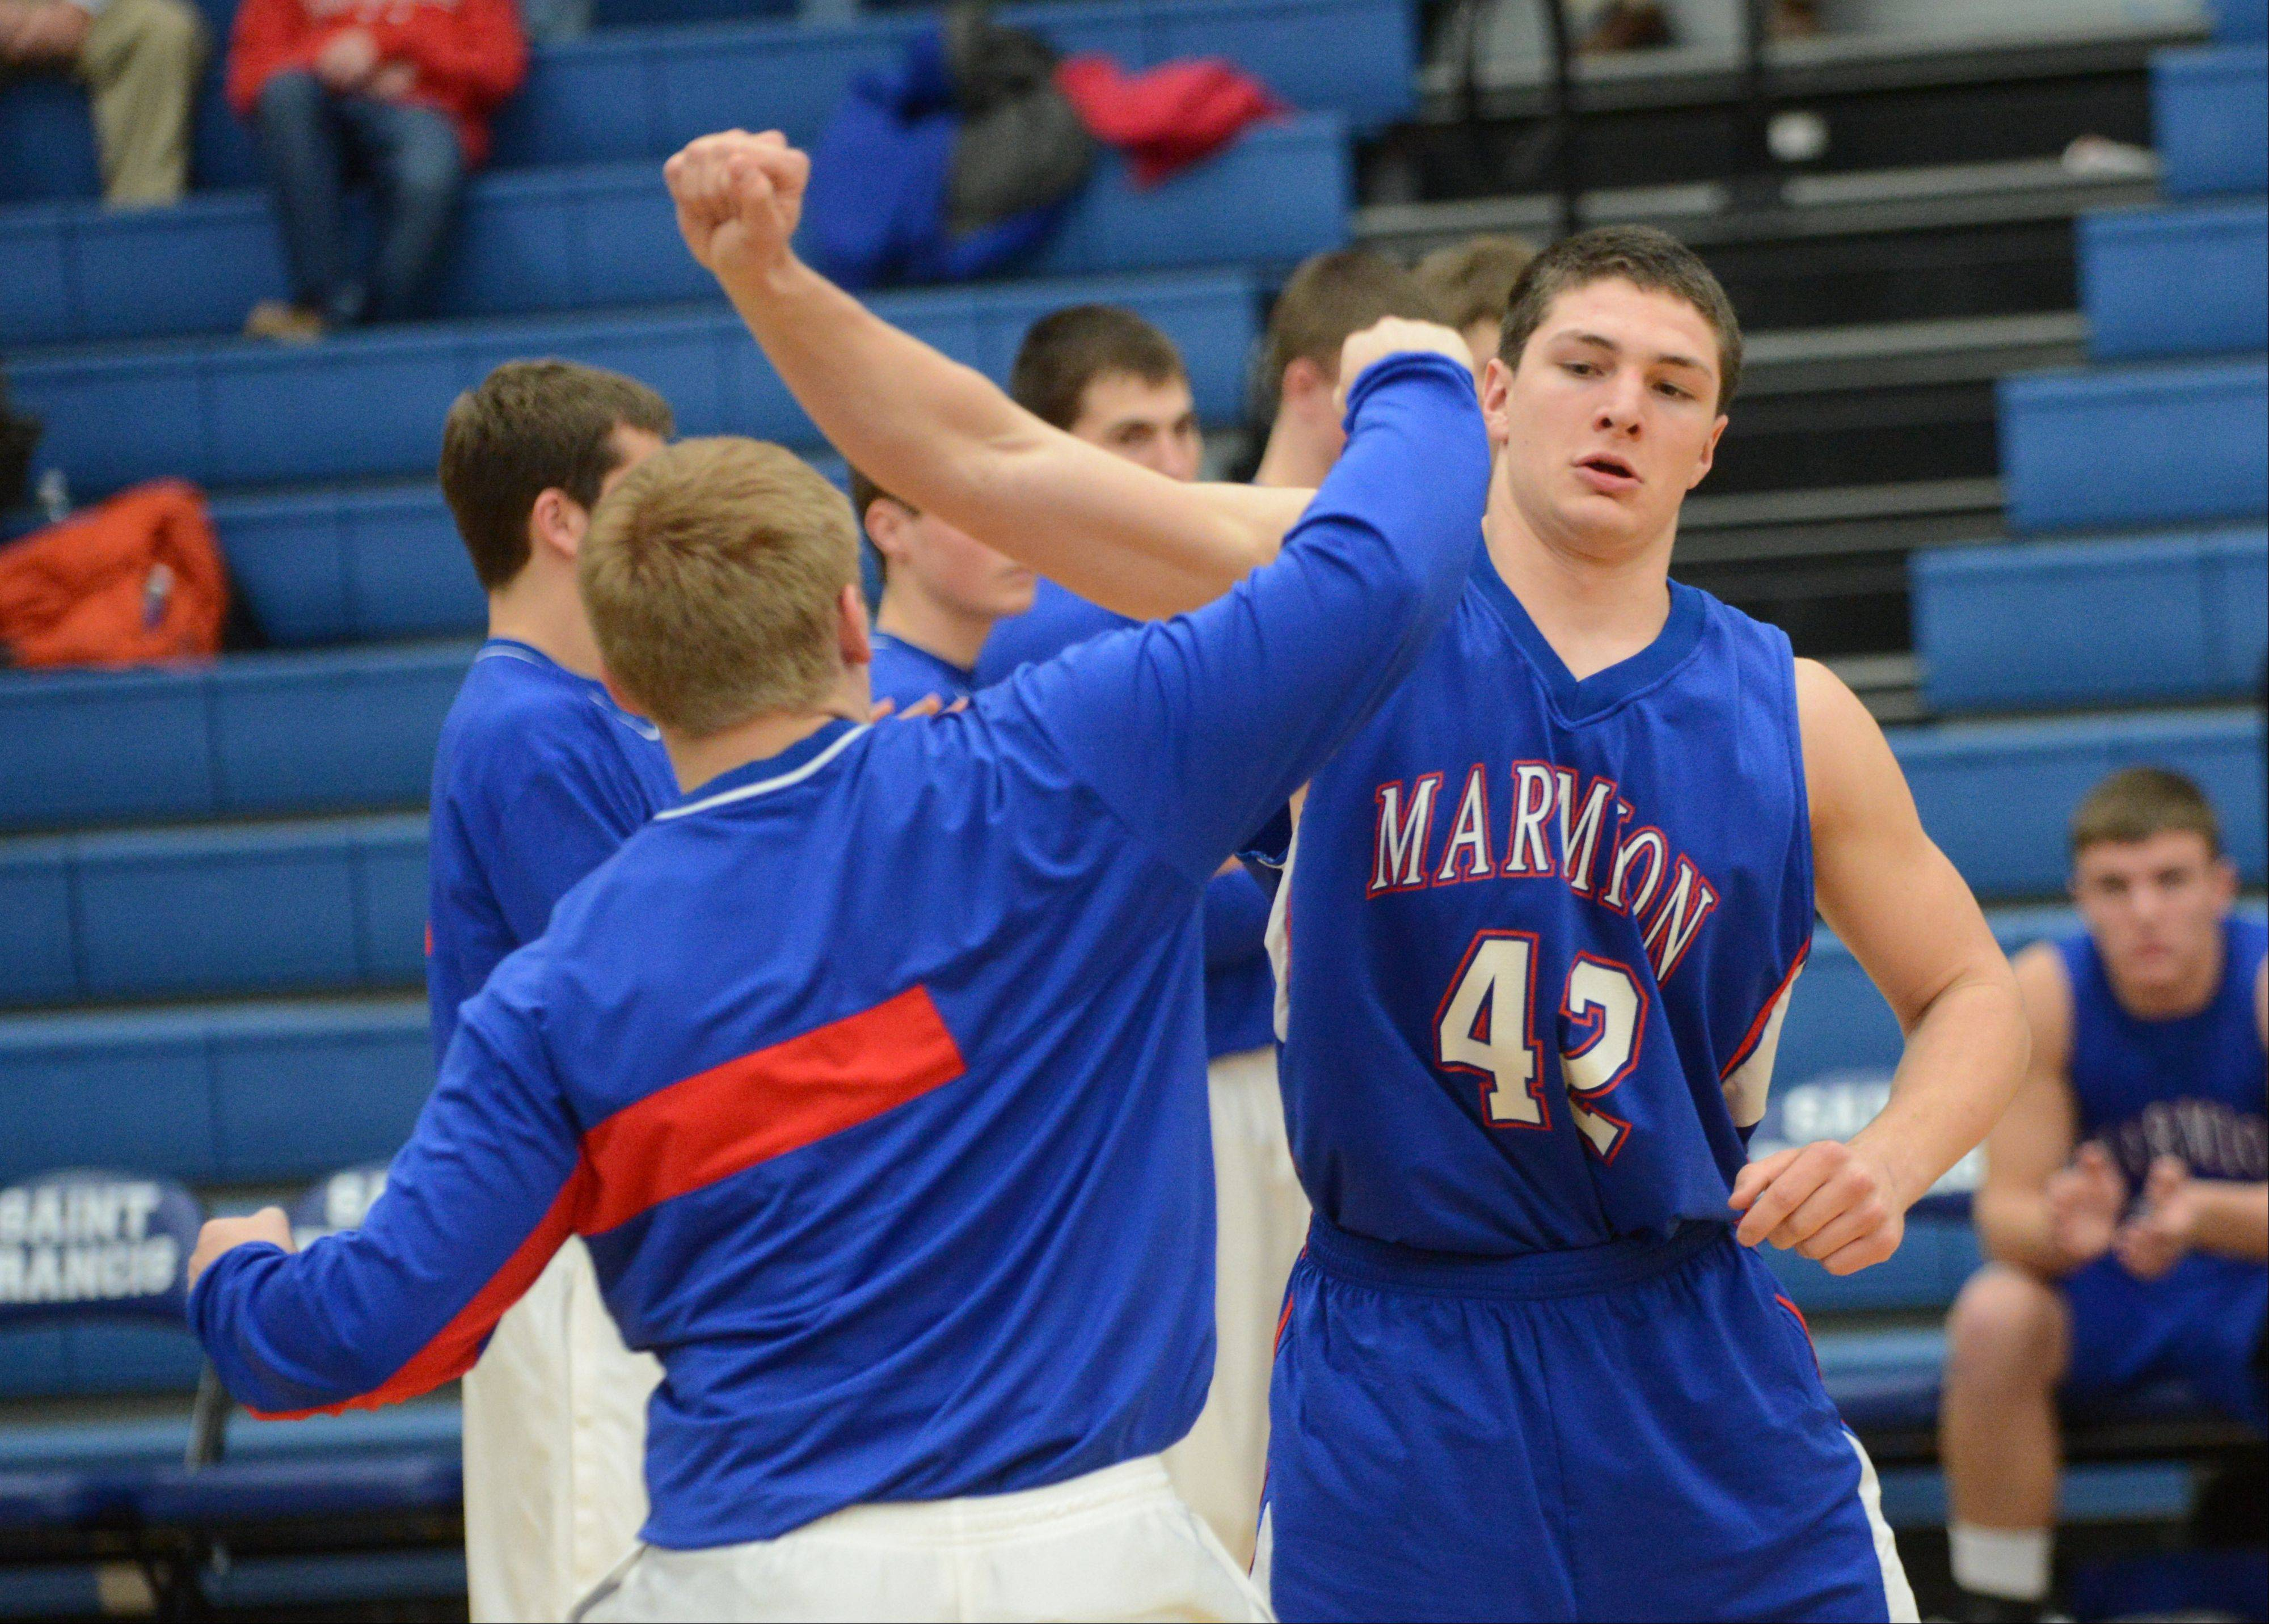 St. Francis High School hosted Marmion Academy Tuesday night for boys basketball.